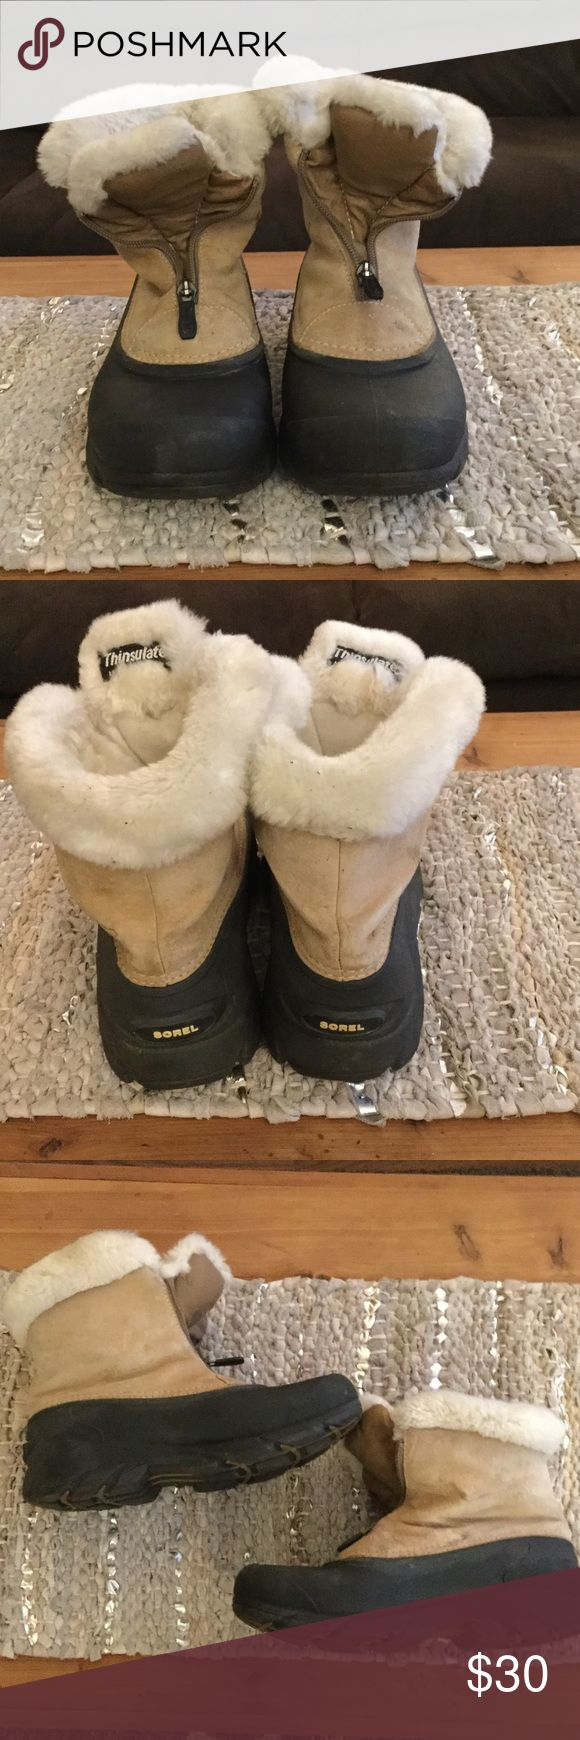 Sorel Thinsulate Boots Some markings in last picture. Overall in good condition, soles are practically perfect. Used but a GREAT option for a DURABLE boot for a fraction of the price! Sorel Shoes Winter & Rain Boots